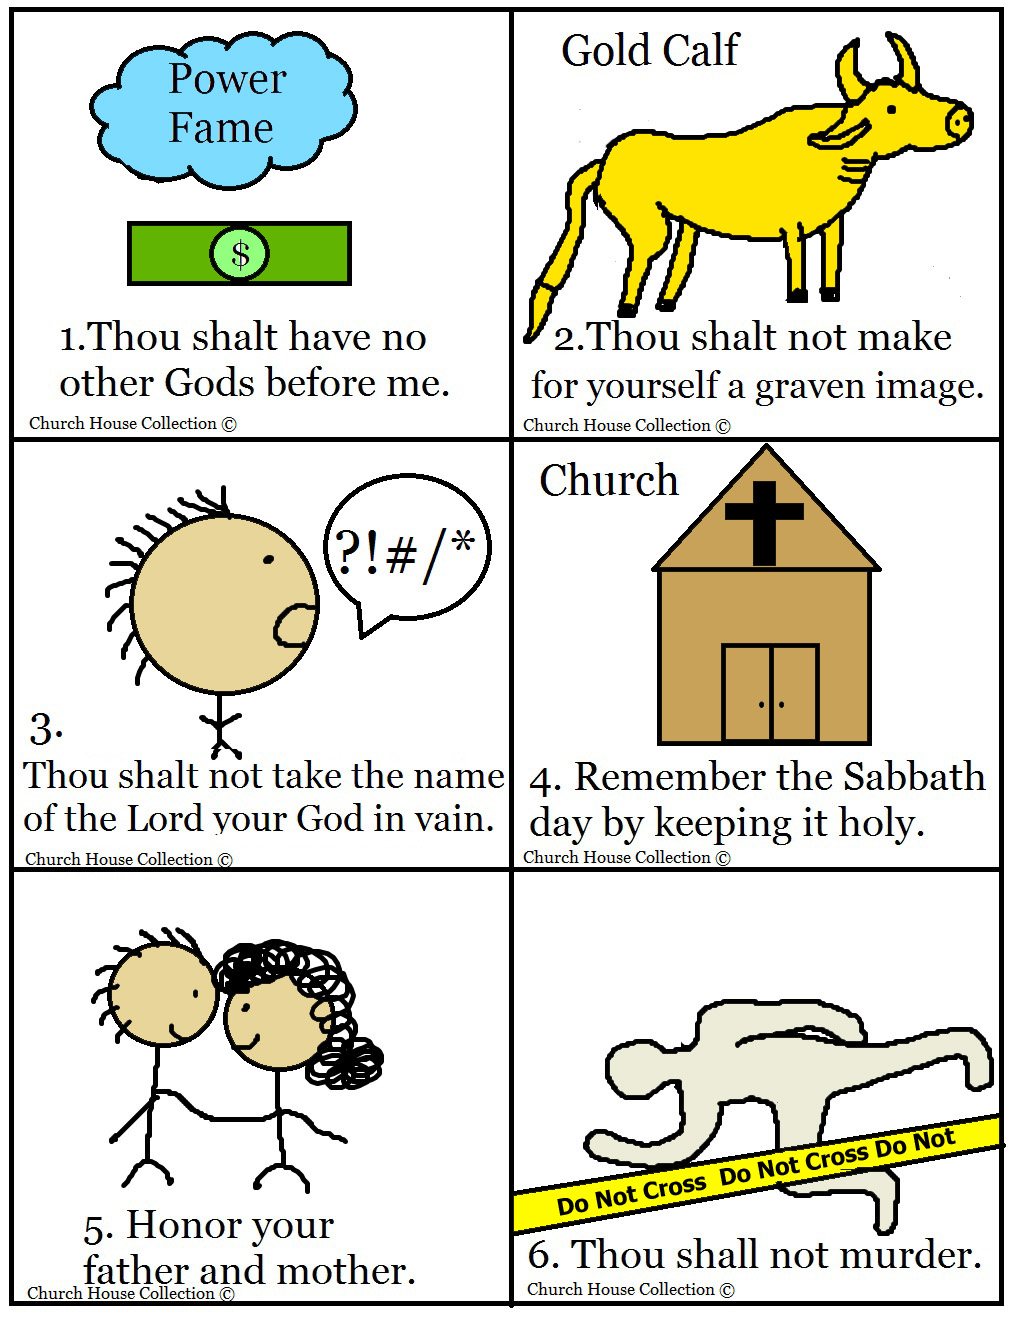 House collection blog 10 commandments bible matching game printable